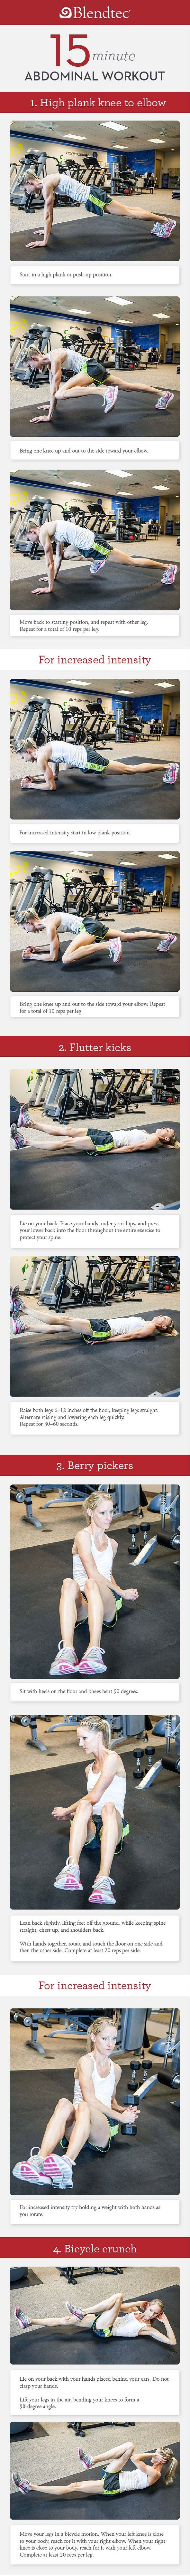 I went to HS with this girl- she's a machine! 15-Minute GOOD Morning Workouts, Part 1- Blendtec Blog.... check it out!